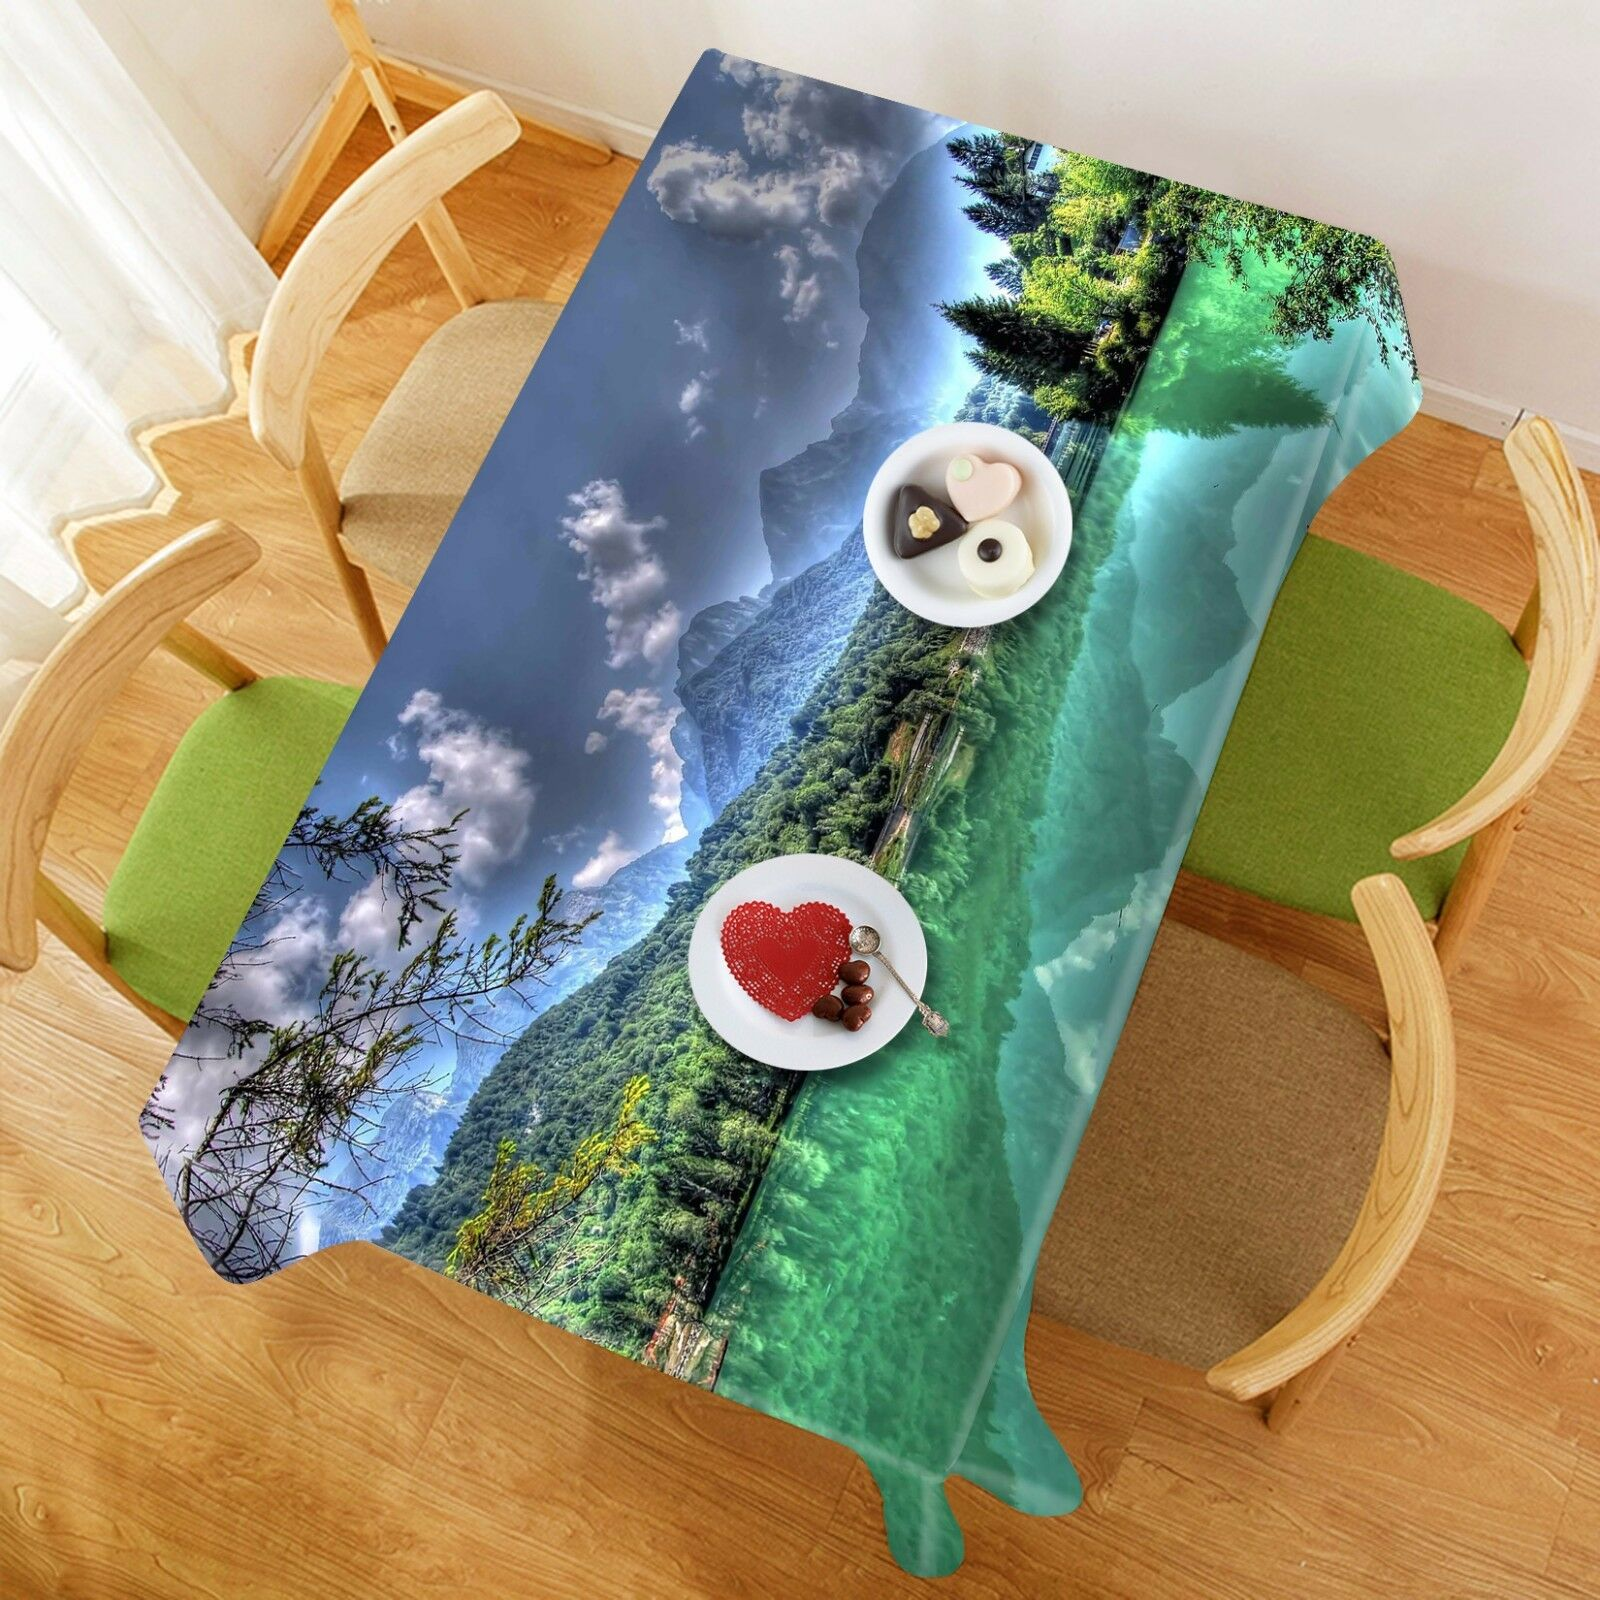 3D Pretty Lake 91 Tablecloth Table Cover Cloth Birthday Party Event AJ WALLPAPER